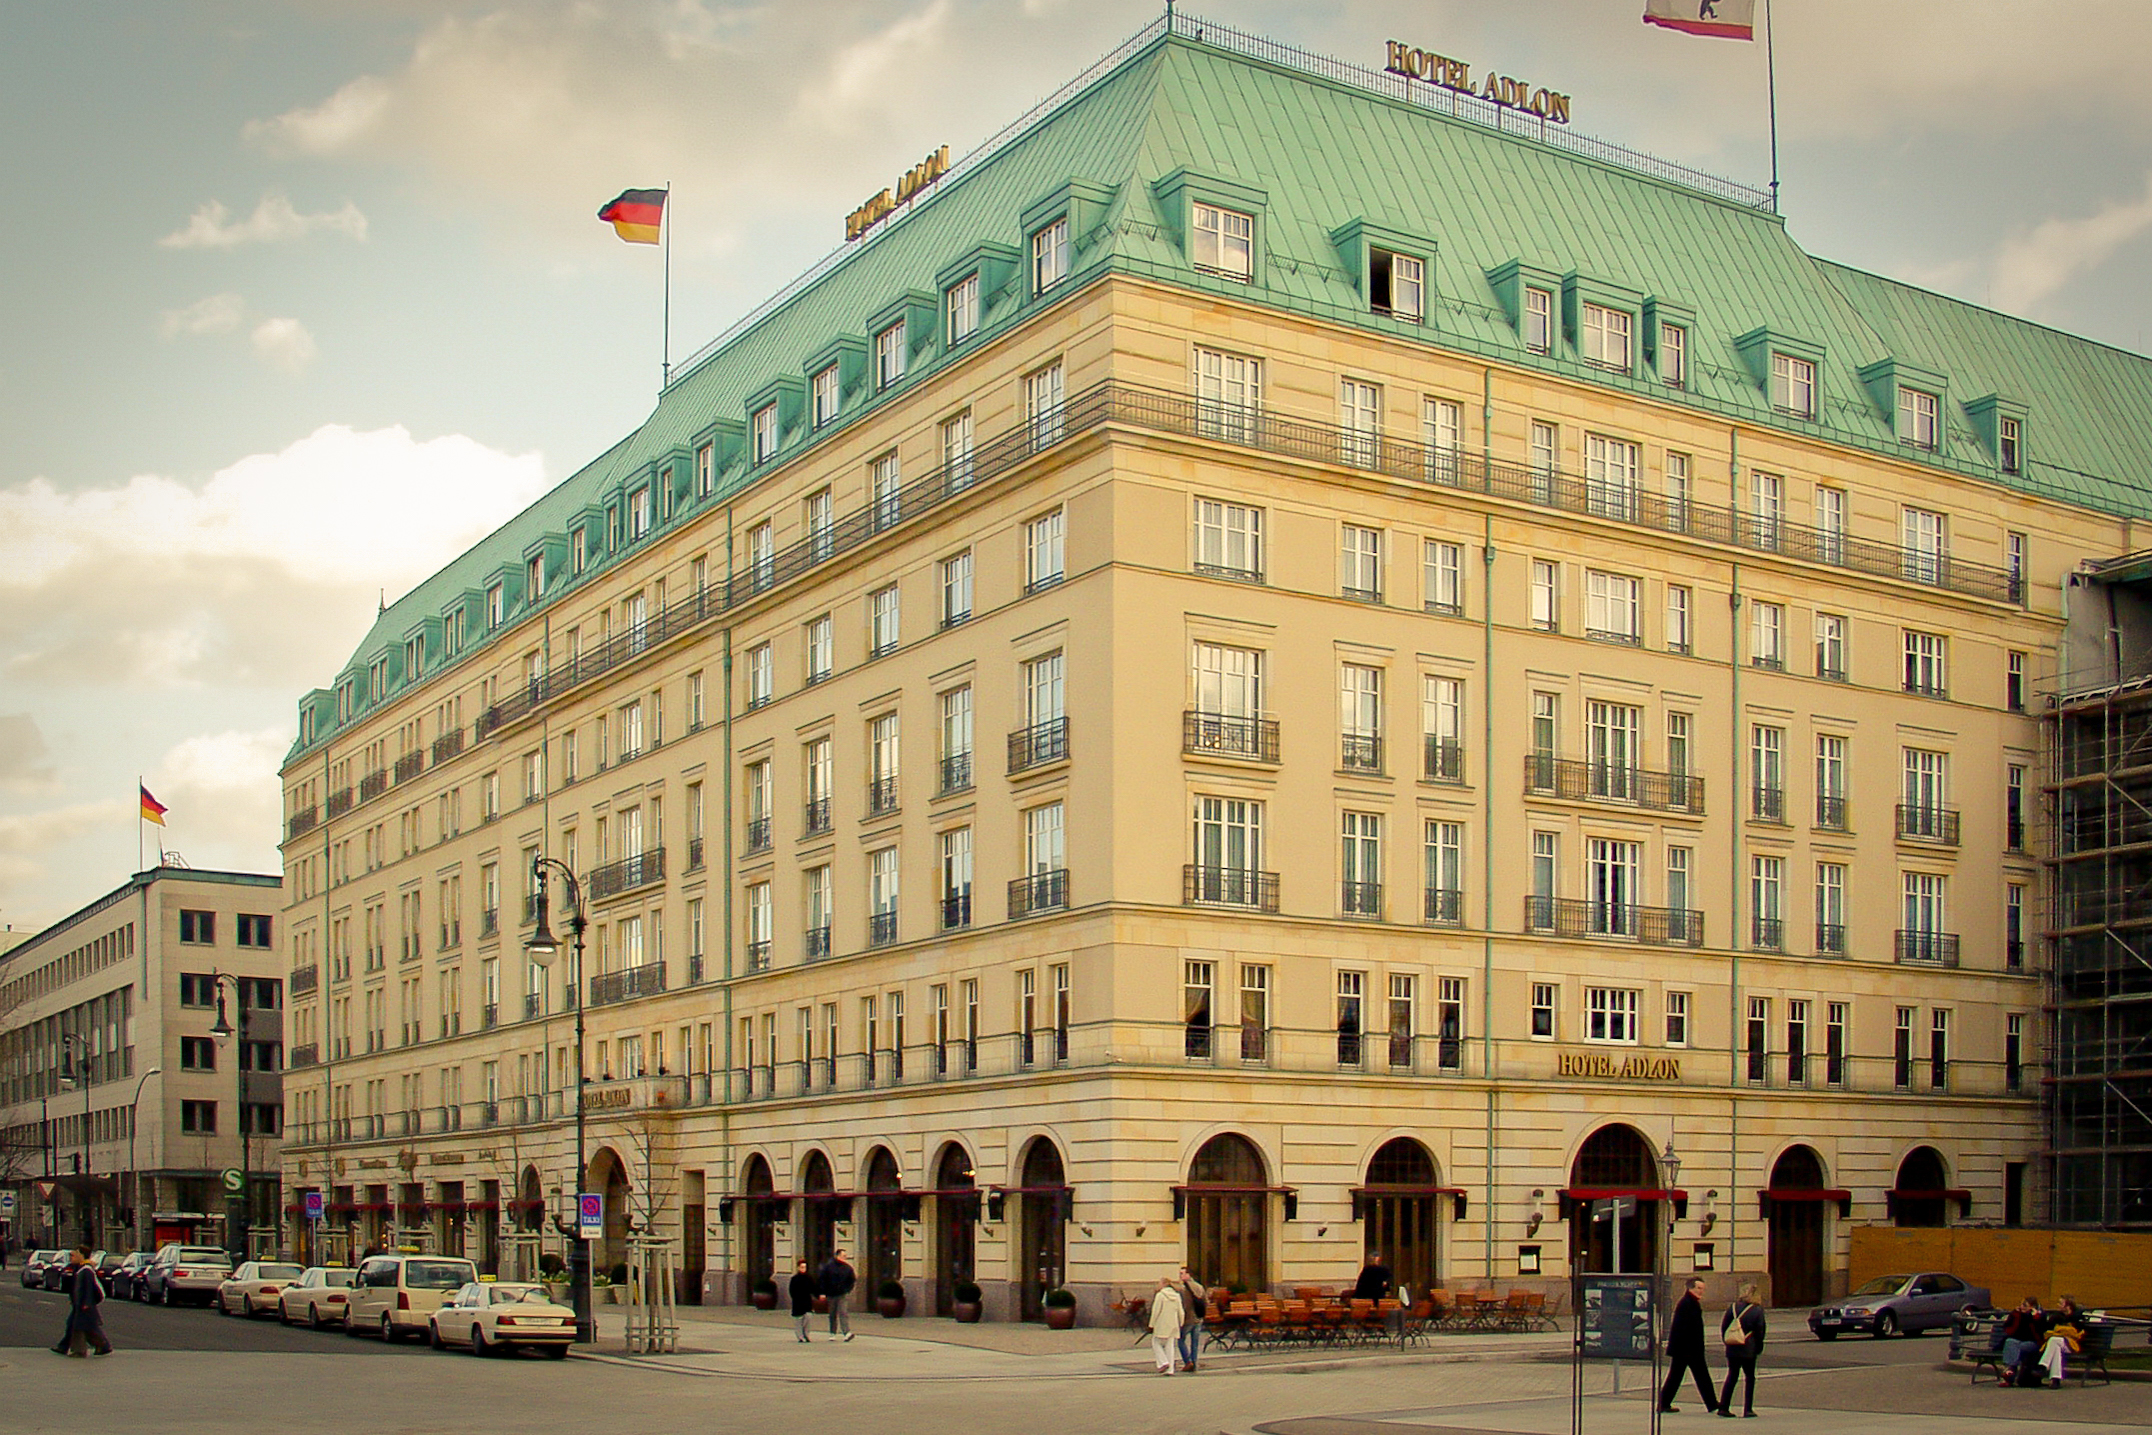 The Hotel Adlon in Berlin - image via  Google .